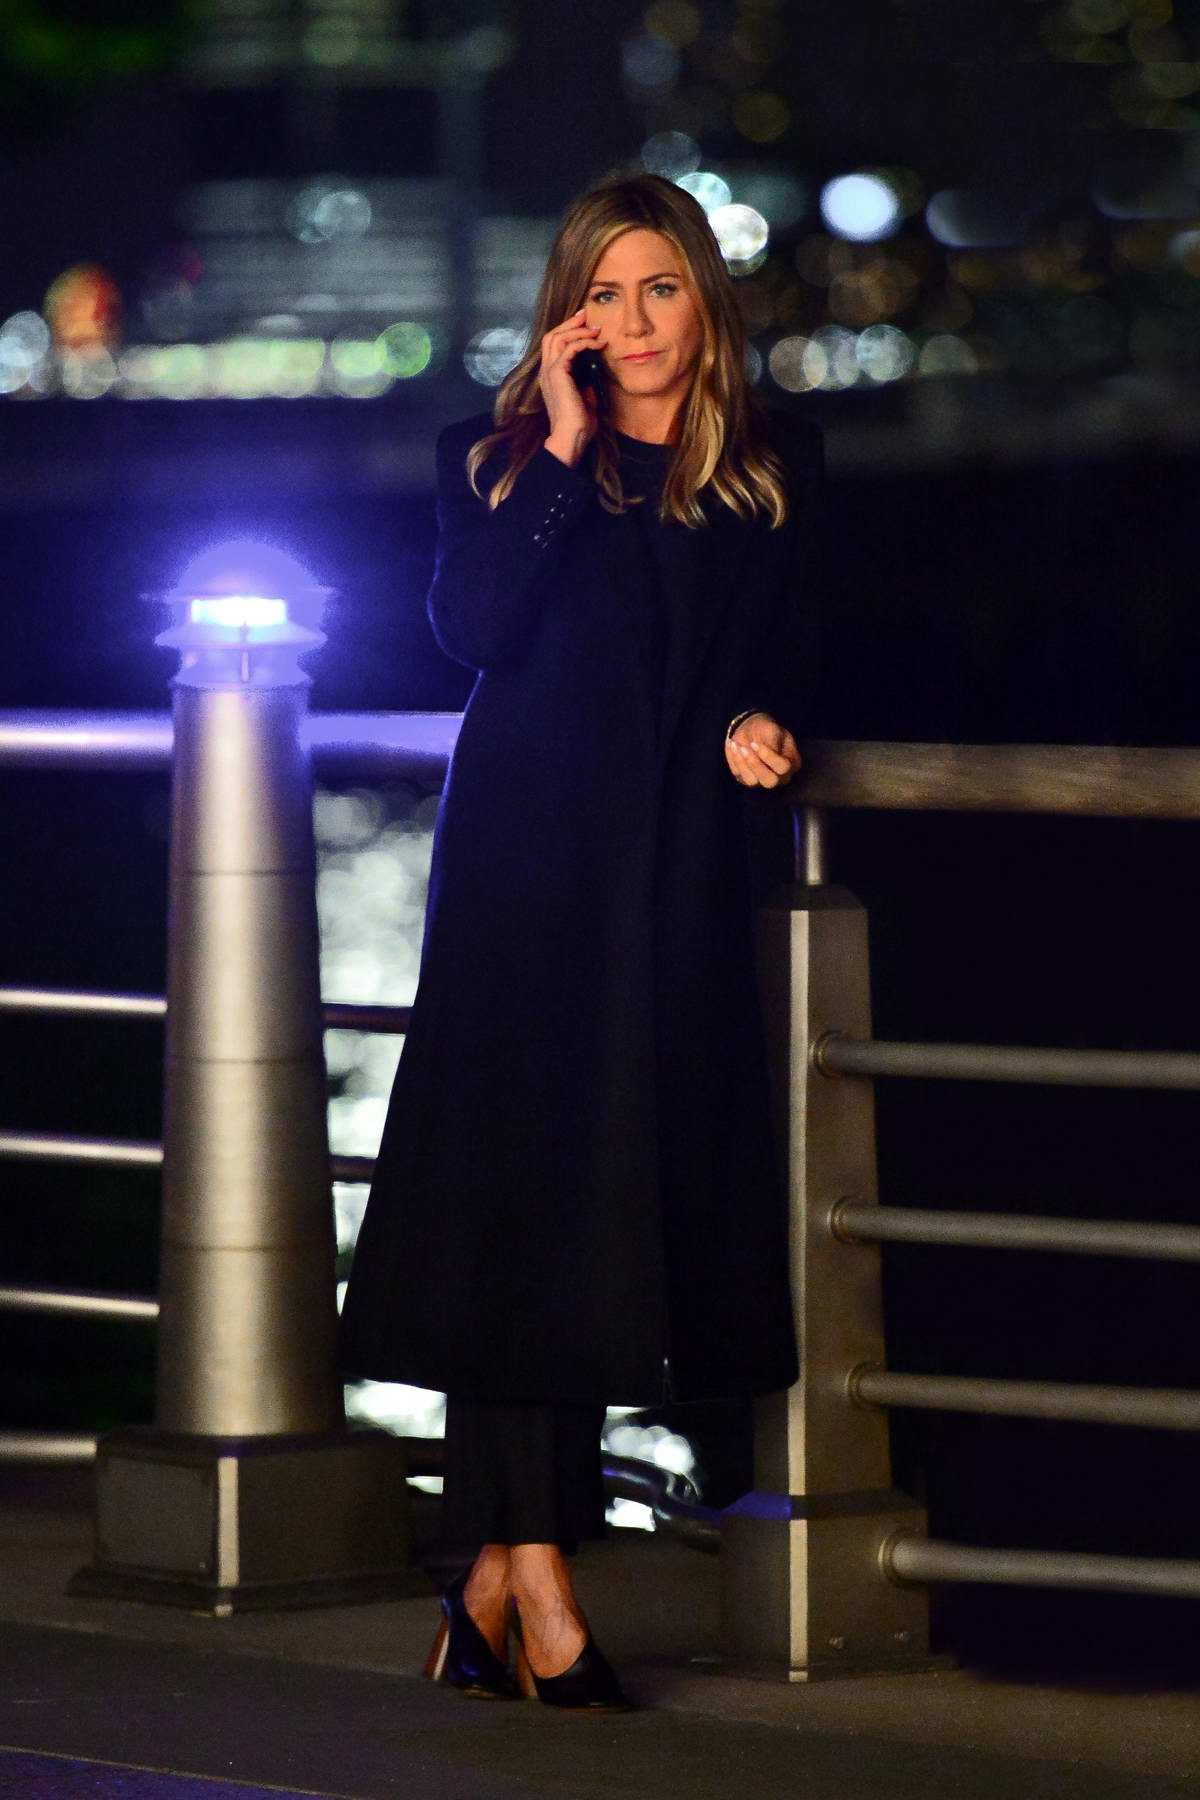 Jennifer Aniston dressed in all black while filming a late night scene for an upcoming project in New York City